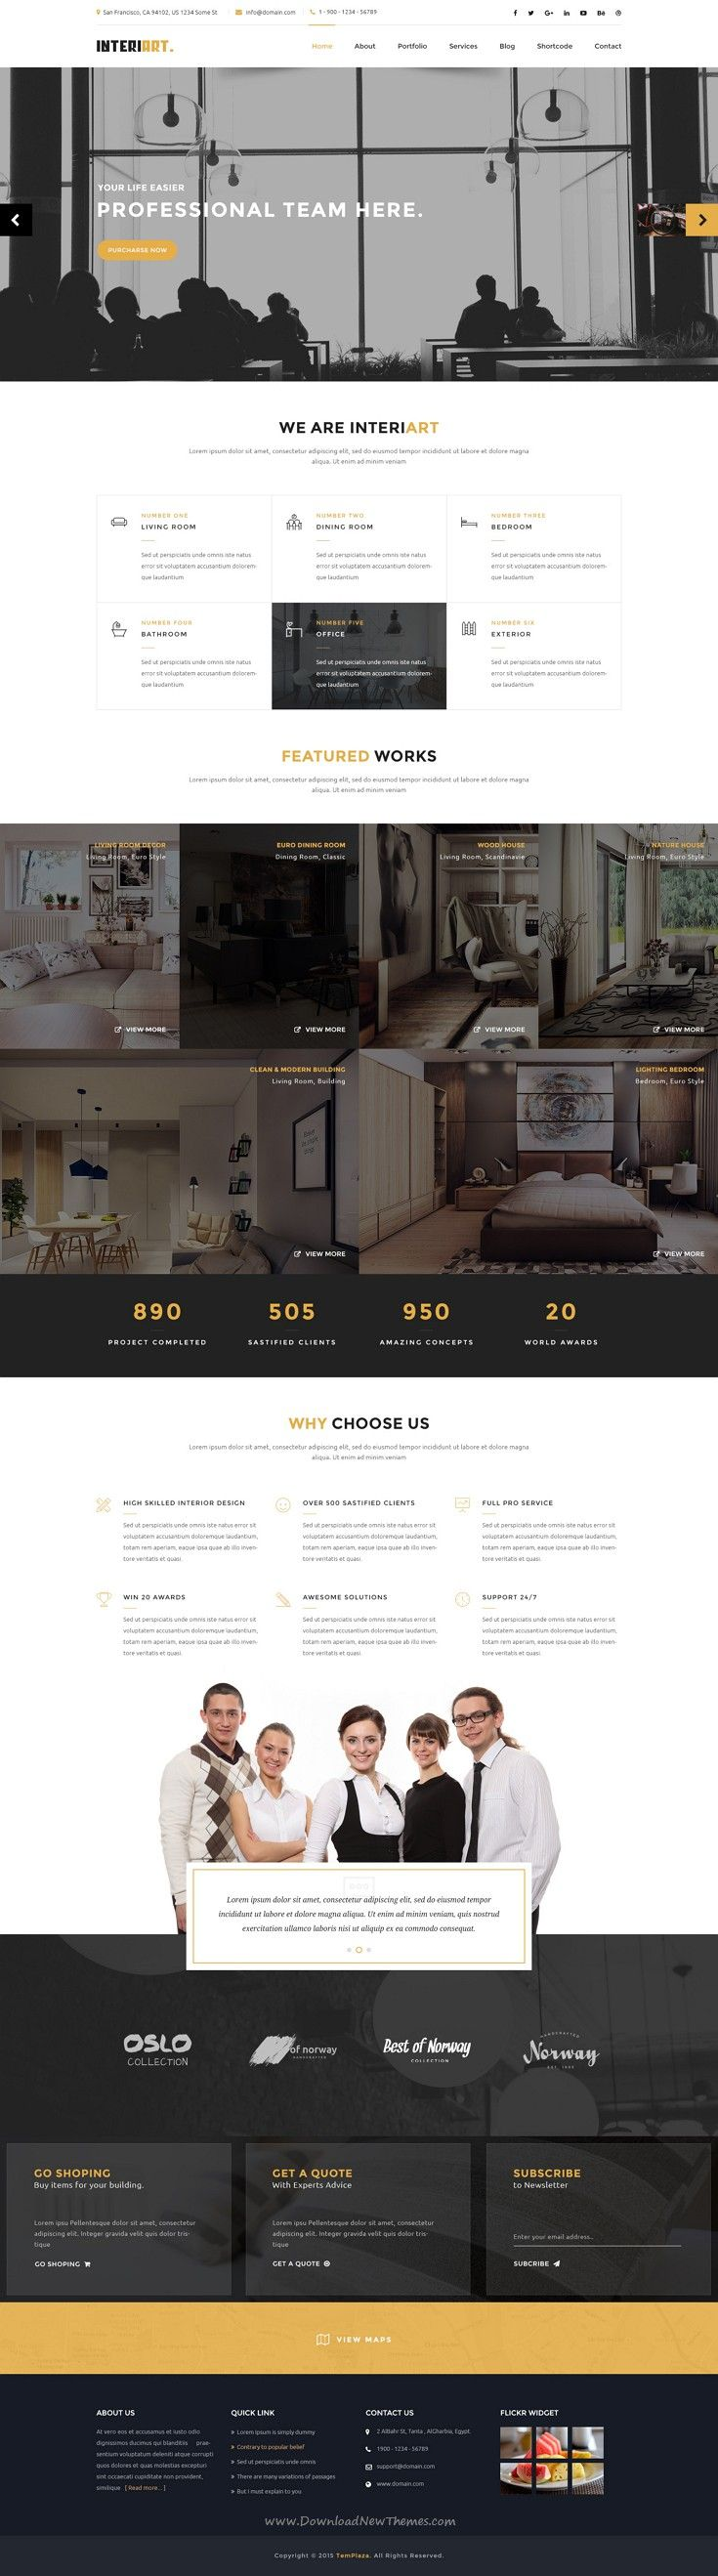 InteriArt   Furniture   Interior Joomla Template. 20  best ideas about Furniture Websites on Pinterest   Room layout